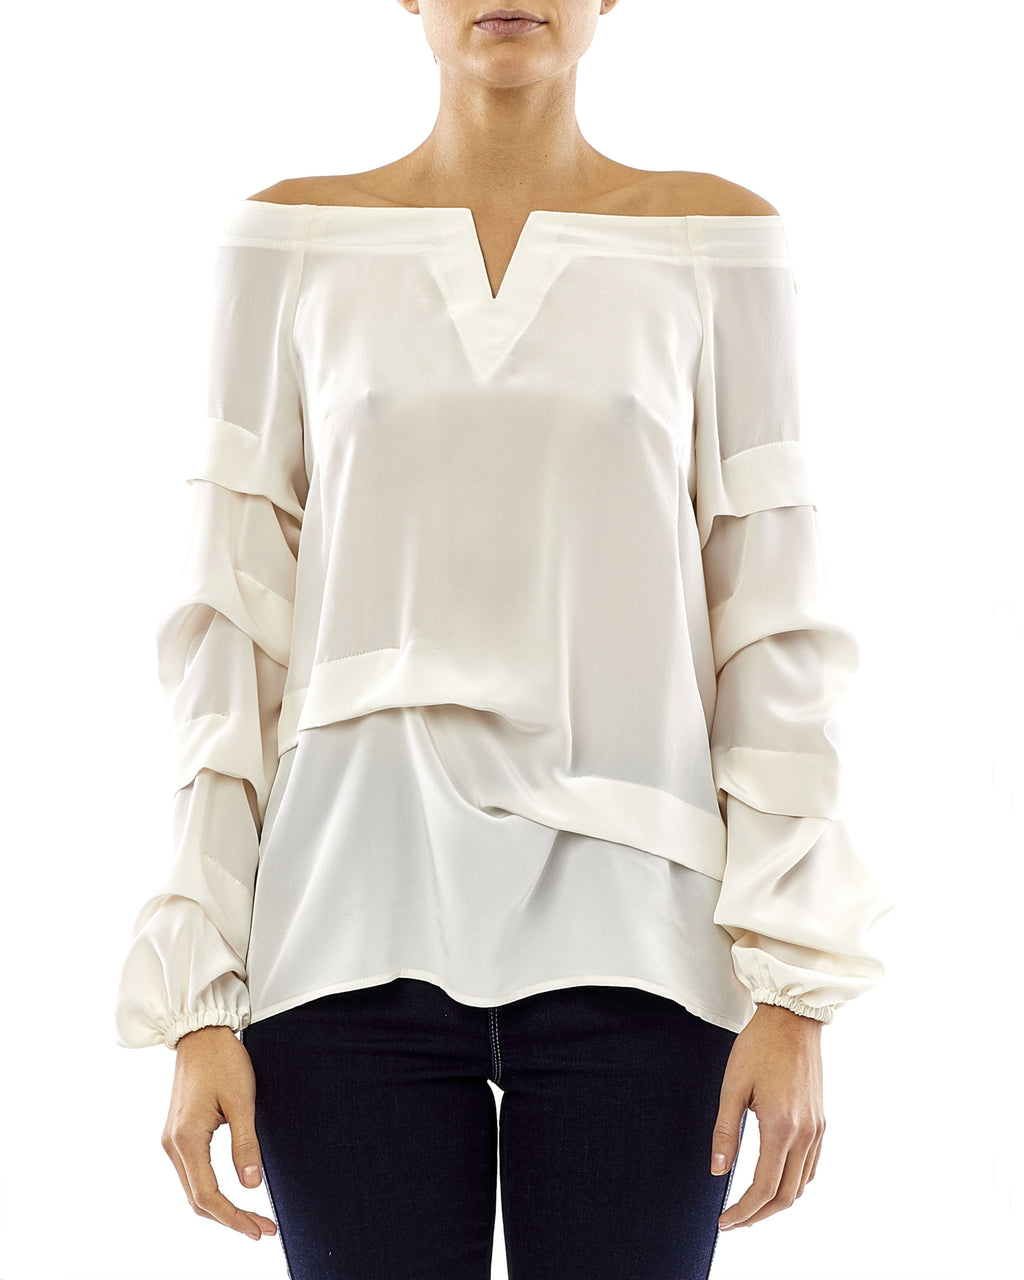 "BK10258 - SOLID SILK TIDAL PLEAT ""V"" TOP - samples - tops - Let's mix darling with daring. This v-neck top features pleated details and an asymmetrical top hem. Pair with denim. Final Sale"